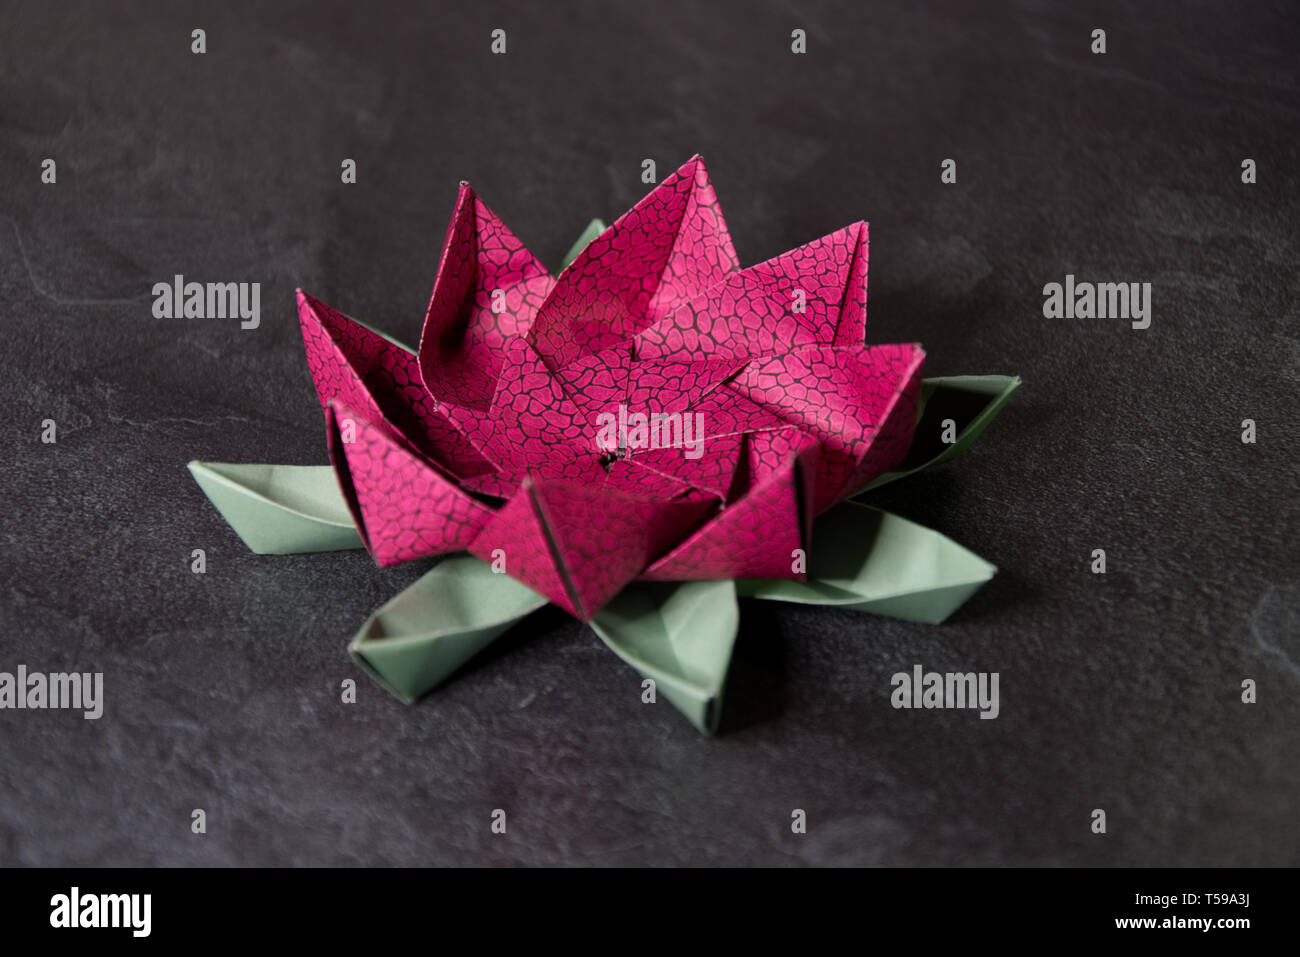 How to make 3d origami lotus - YouTube   957x1300